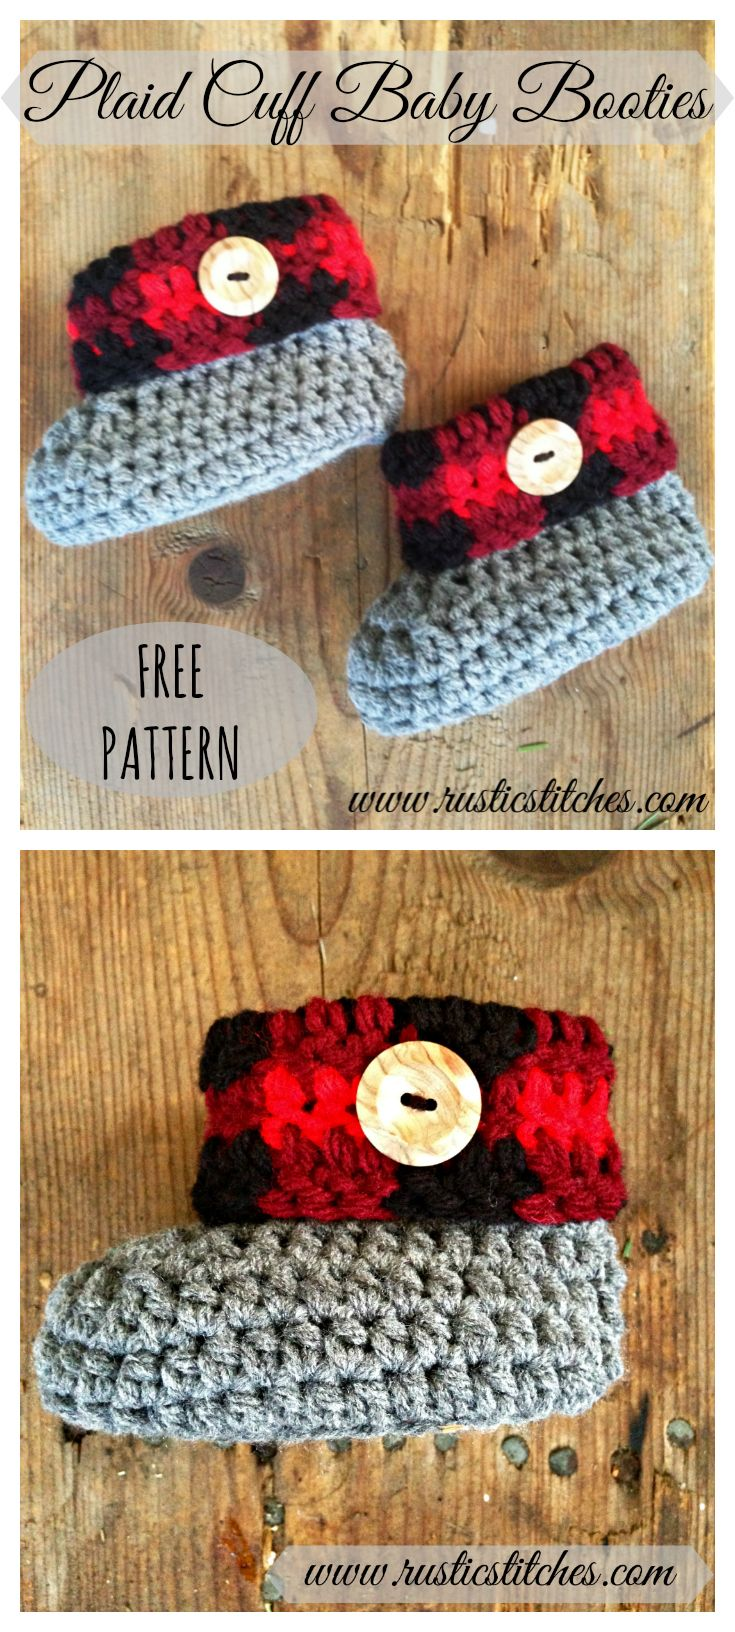 Newborn baby booties - free pattern